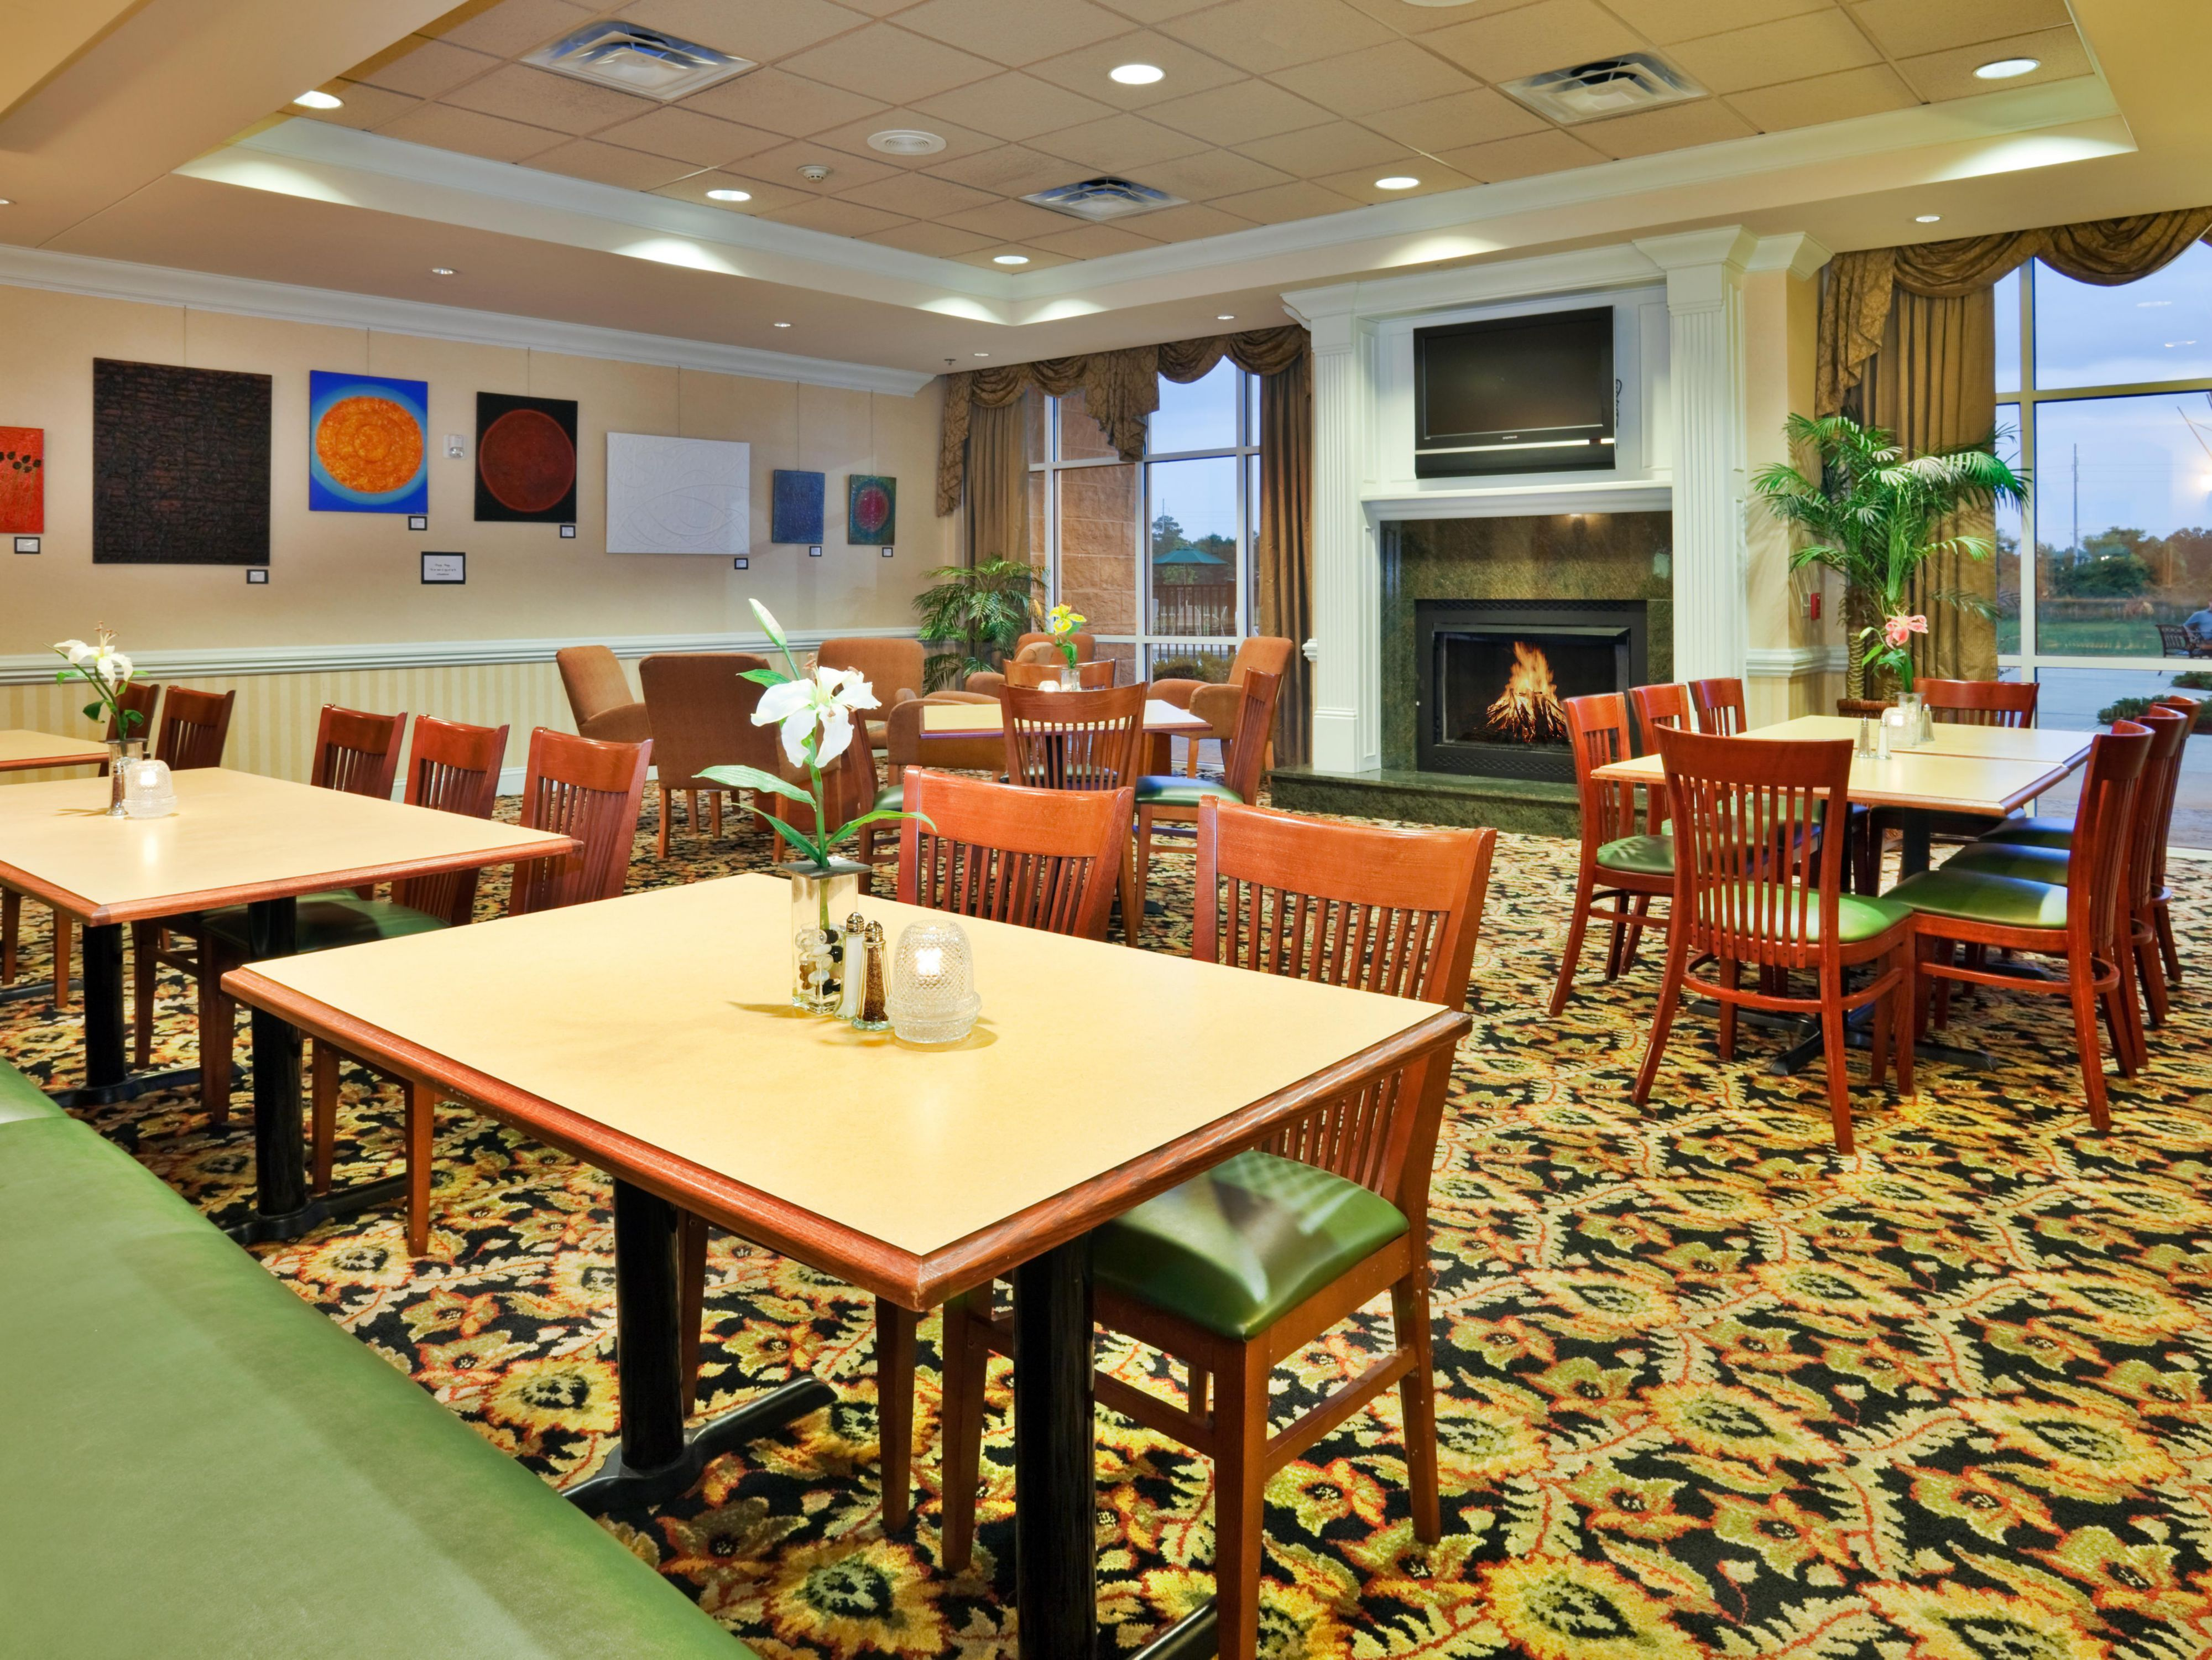 Valdosta, GA Holiday Inn Fireplace Guest Dining and Lounge